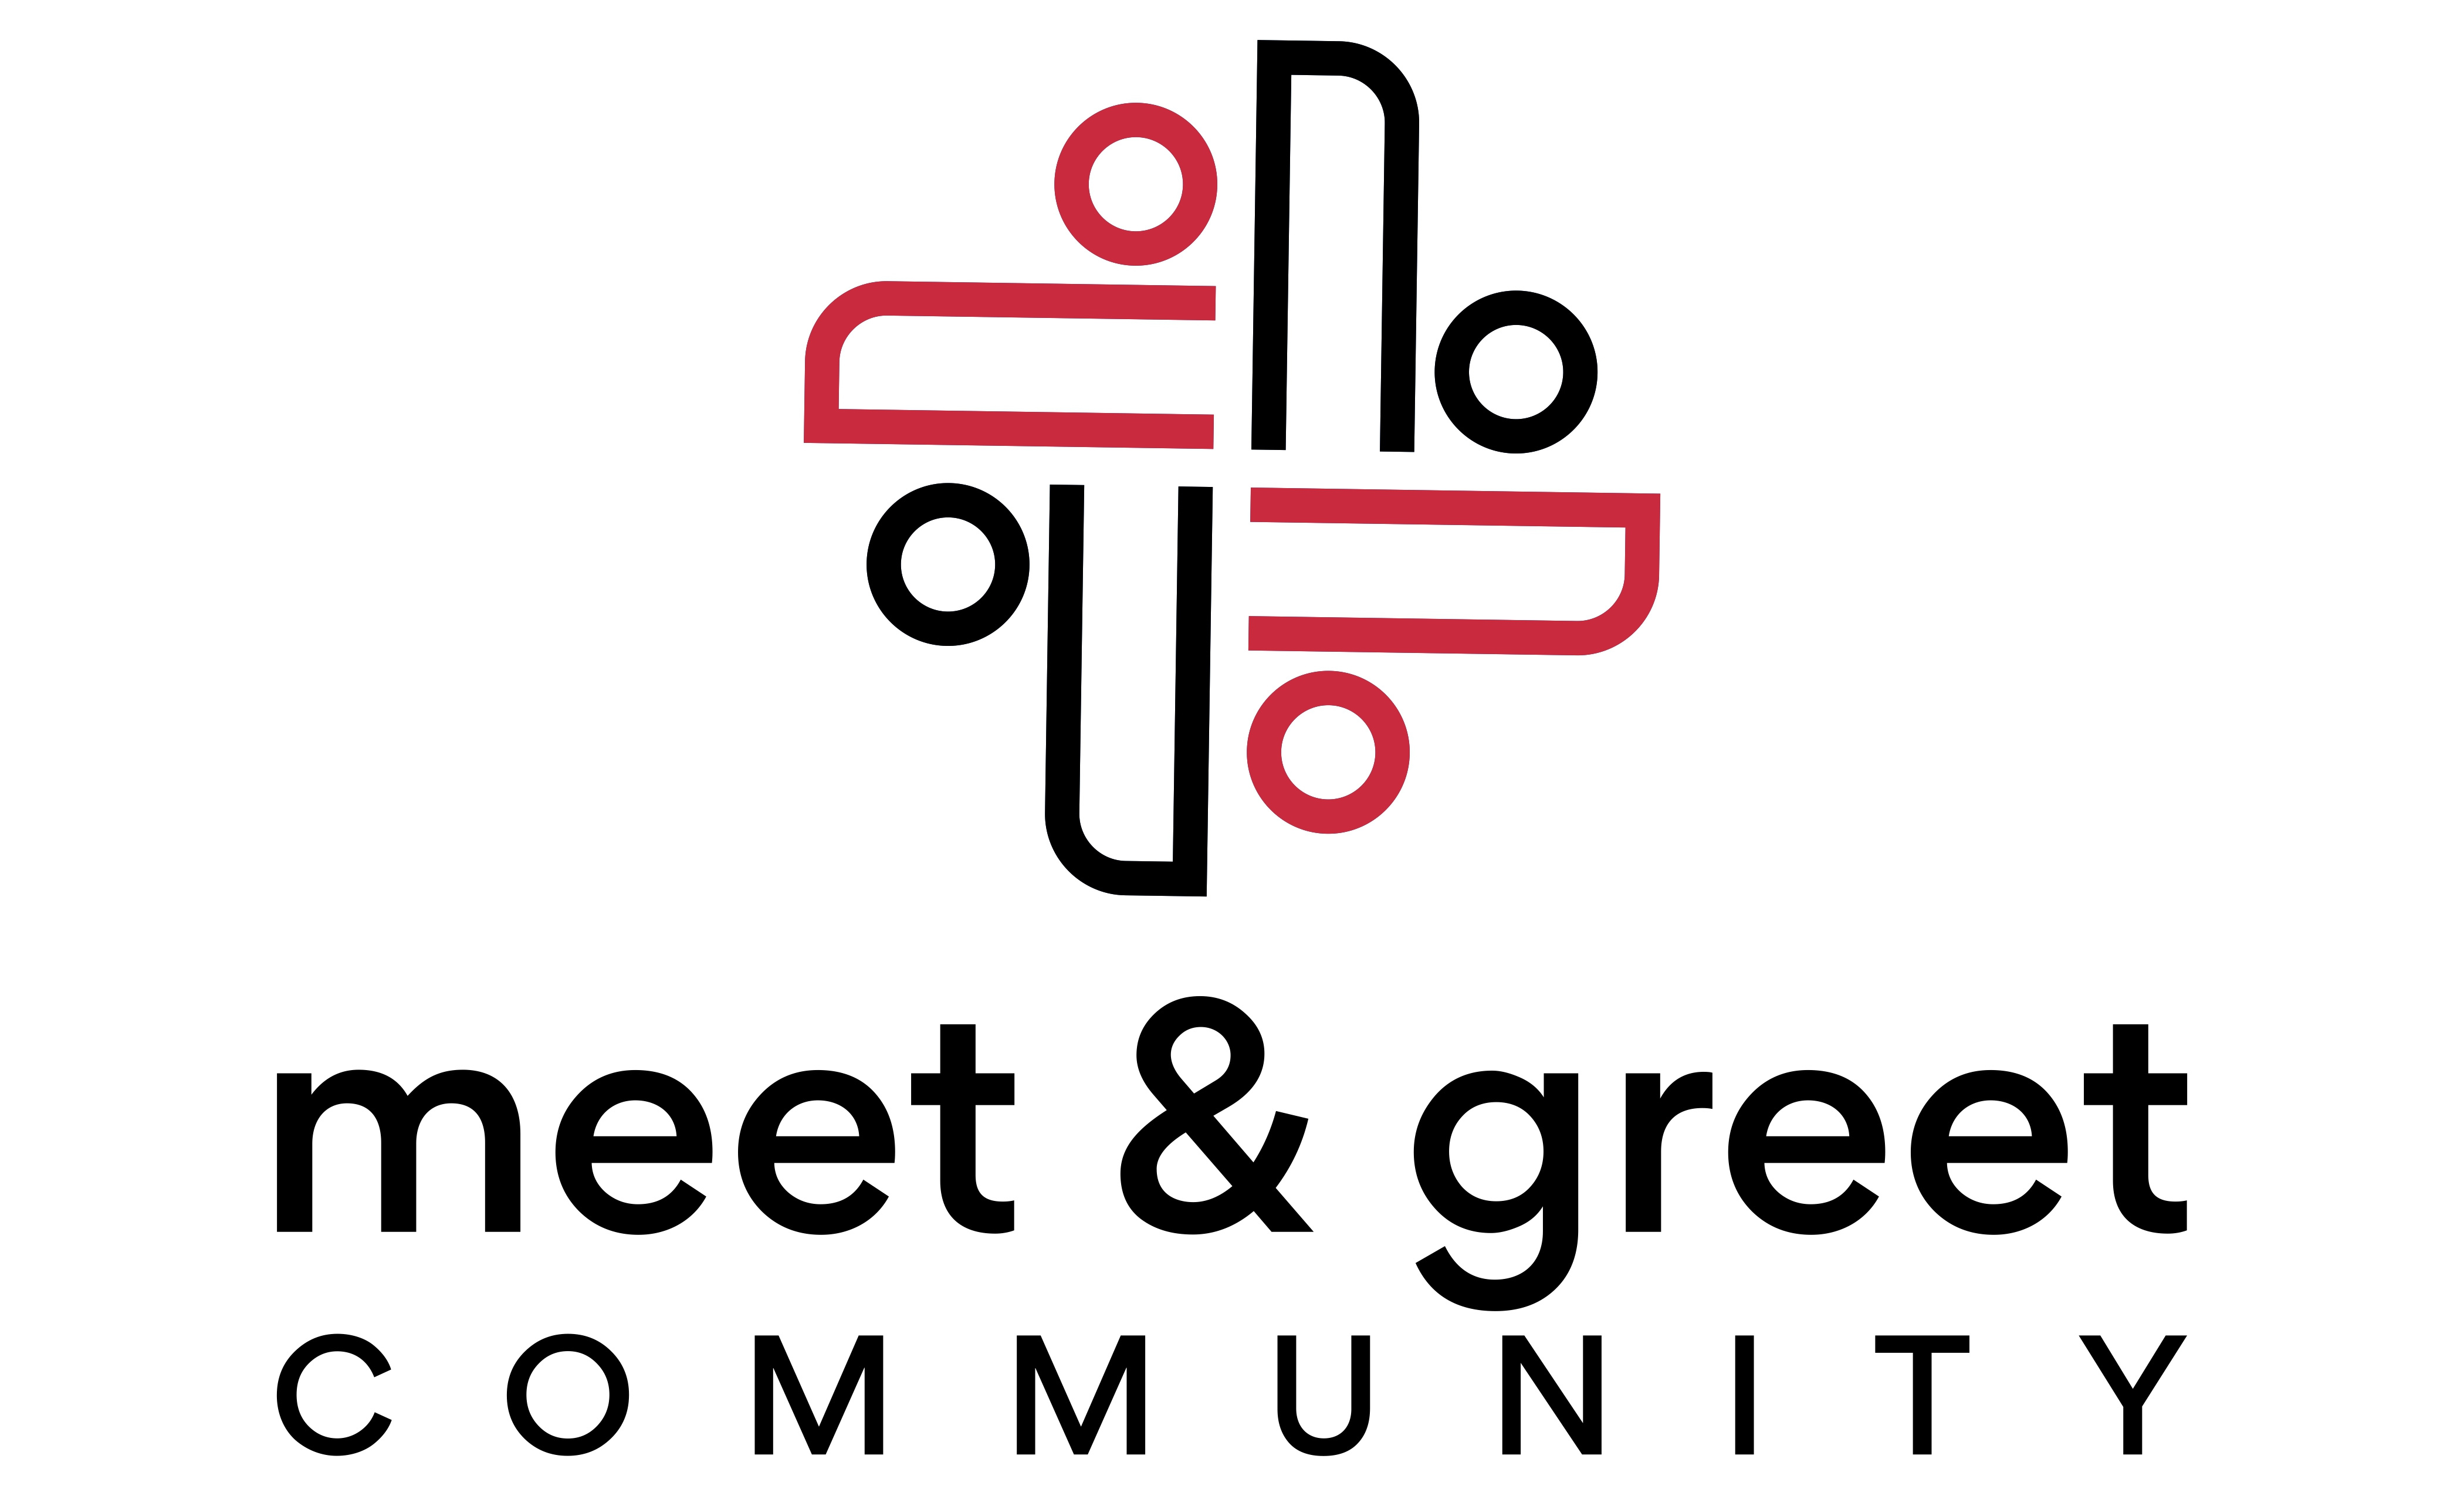 meet & greet Community